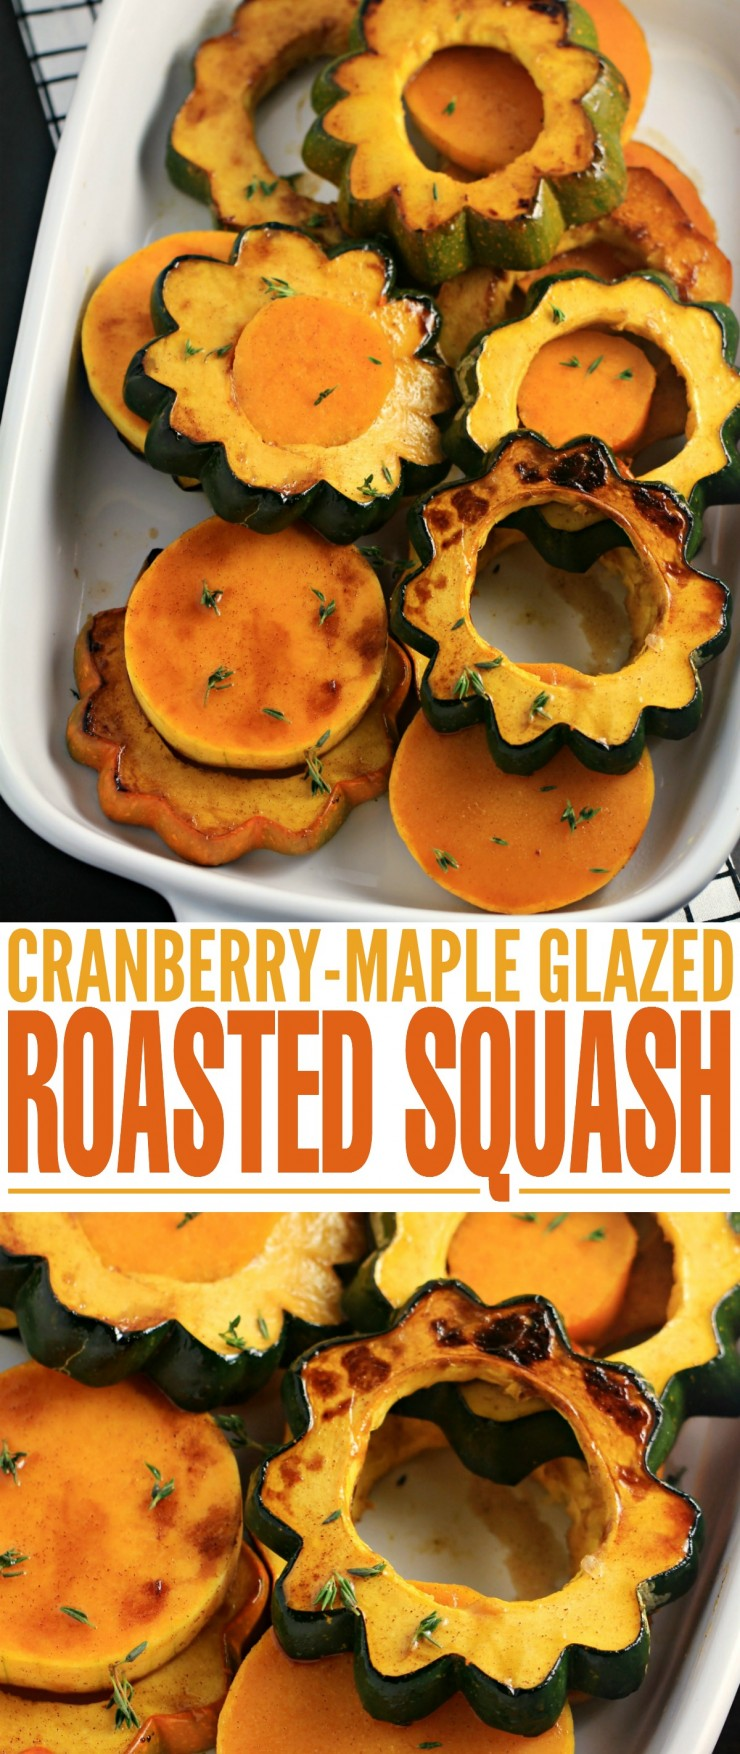 This Roasted Squash with Cranberry-Maple Glaze recipe makes for a perfect autumn side dish. Pair with turkey and all your other fixings for a delicious Thanksgiving feast or serve simply as part of a regular family weekday meal.